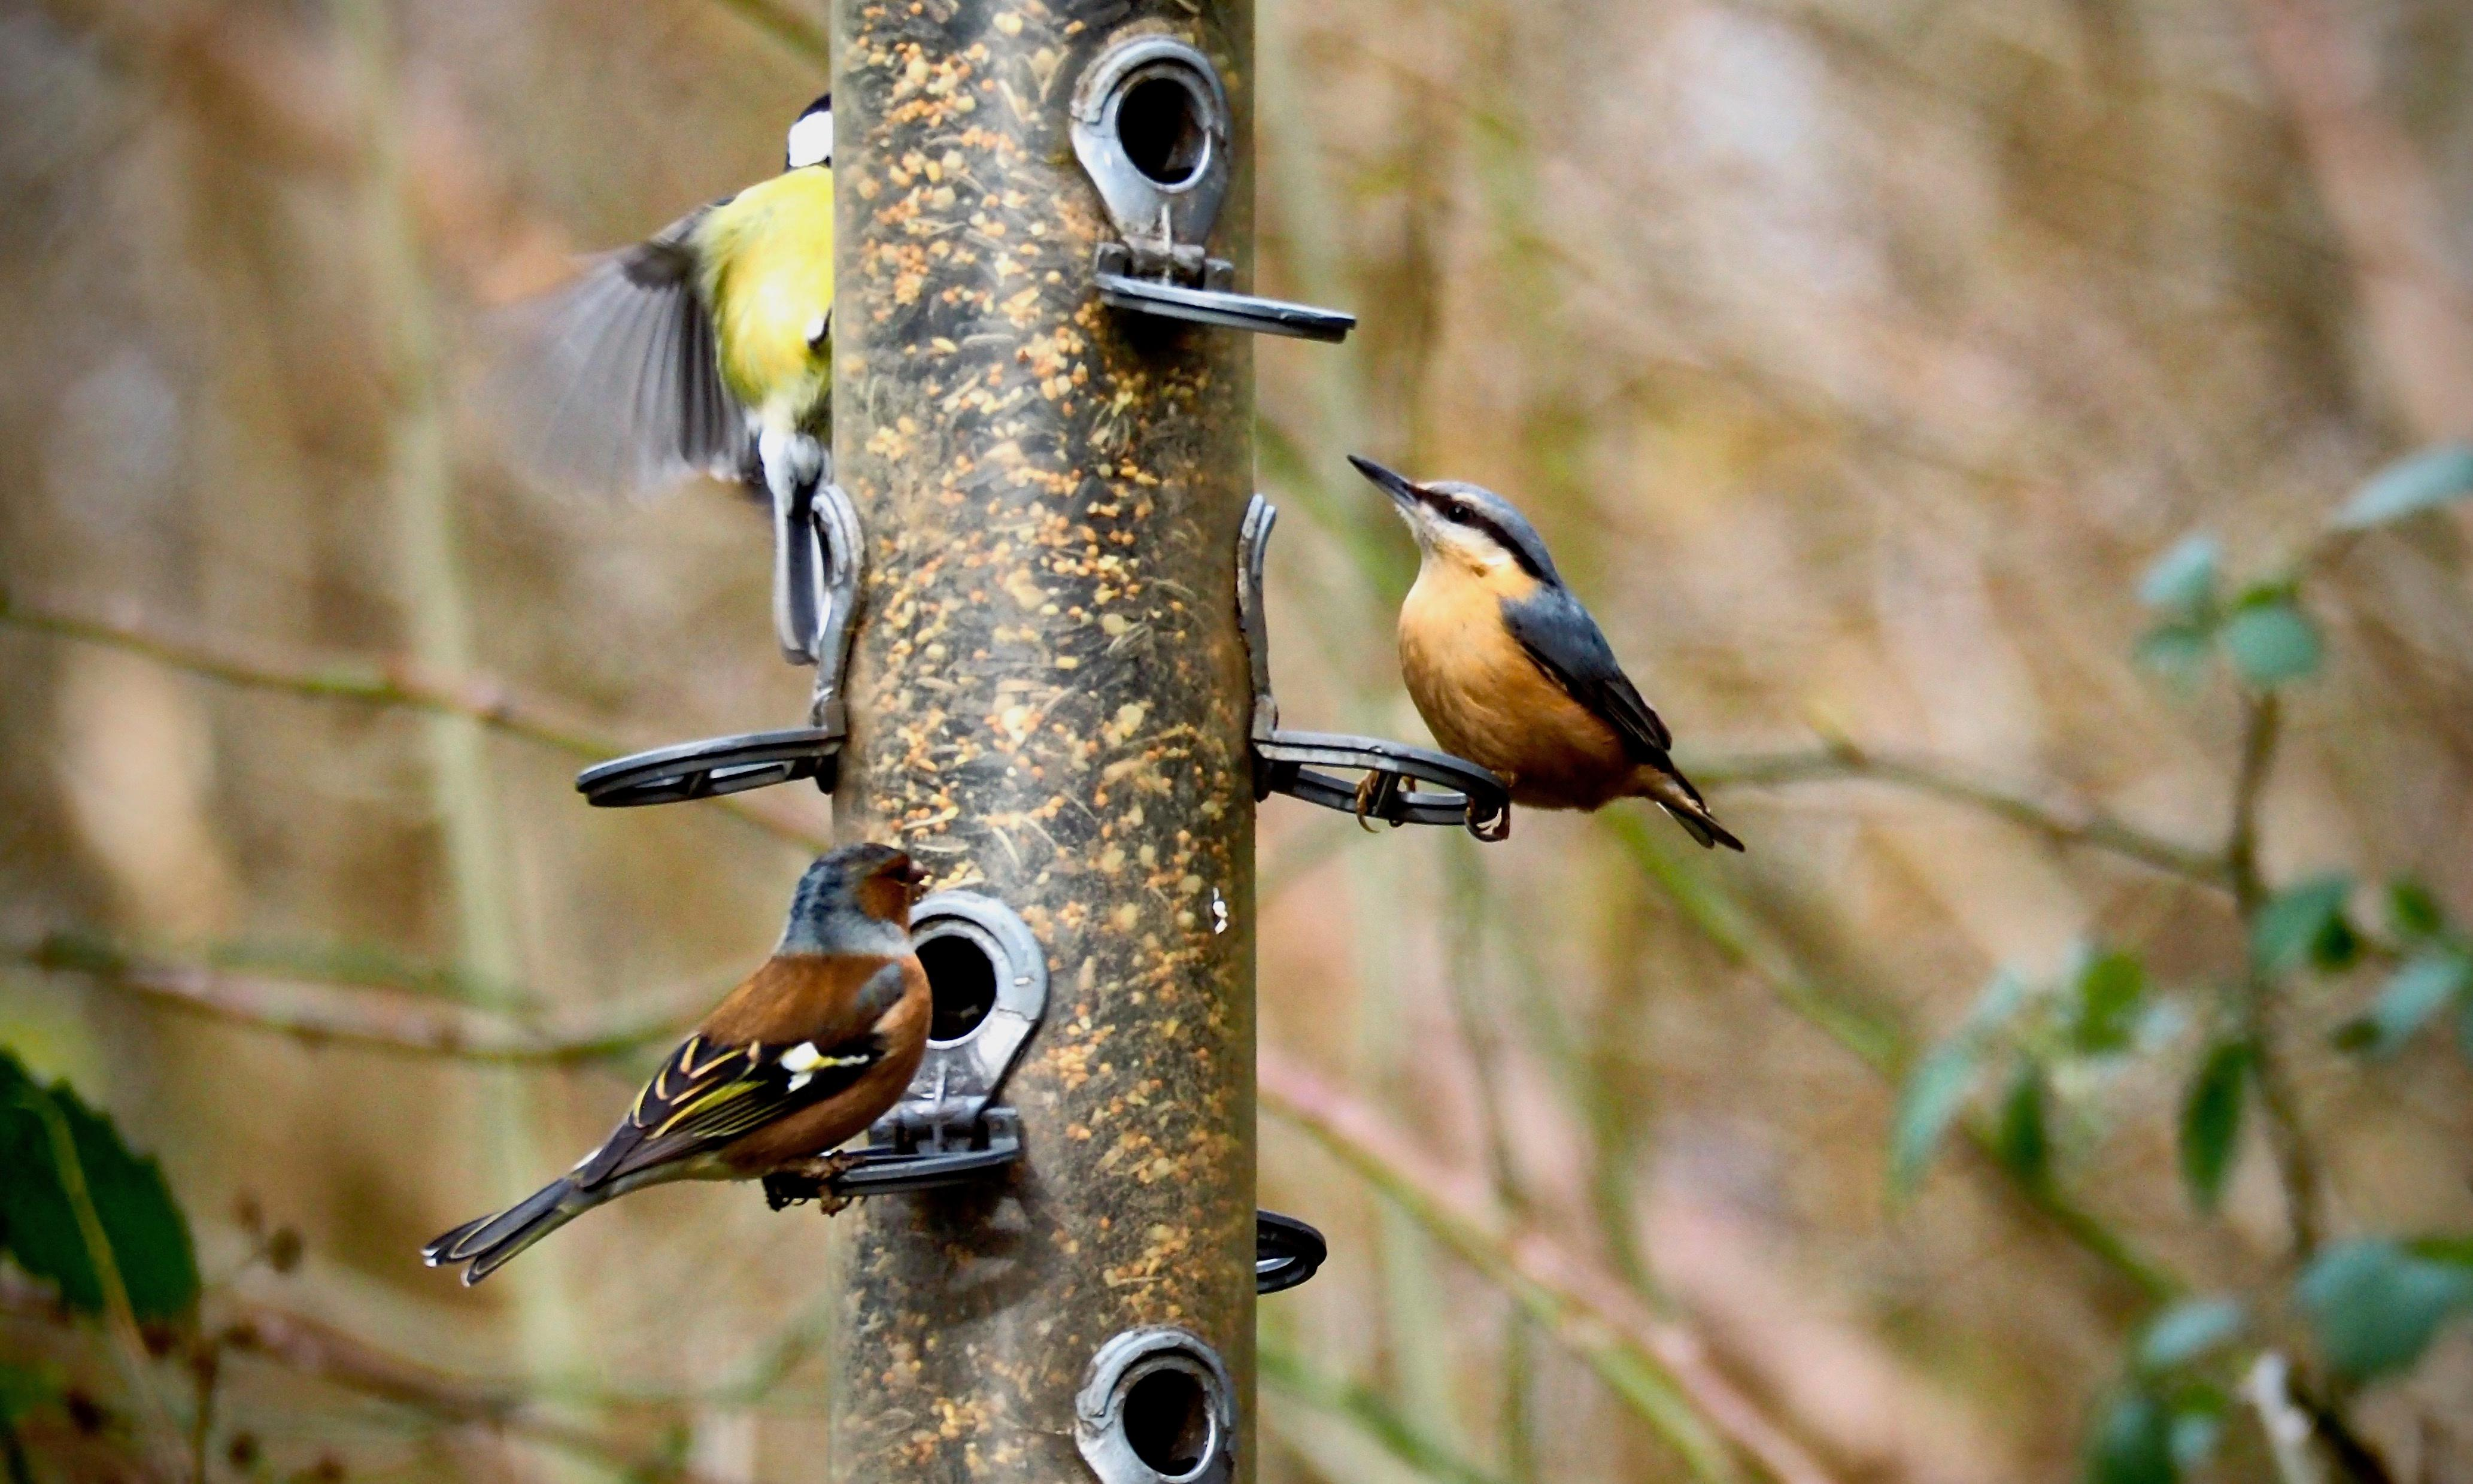 Country diary: the gatherings at the bird feeder are anything but random